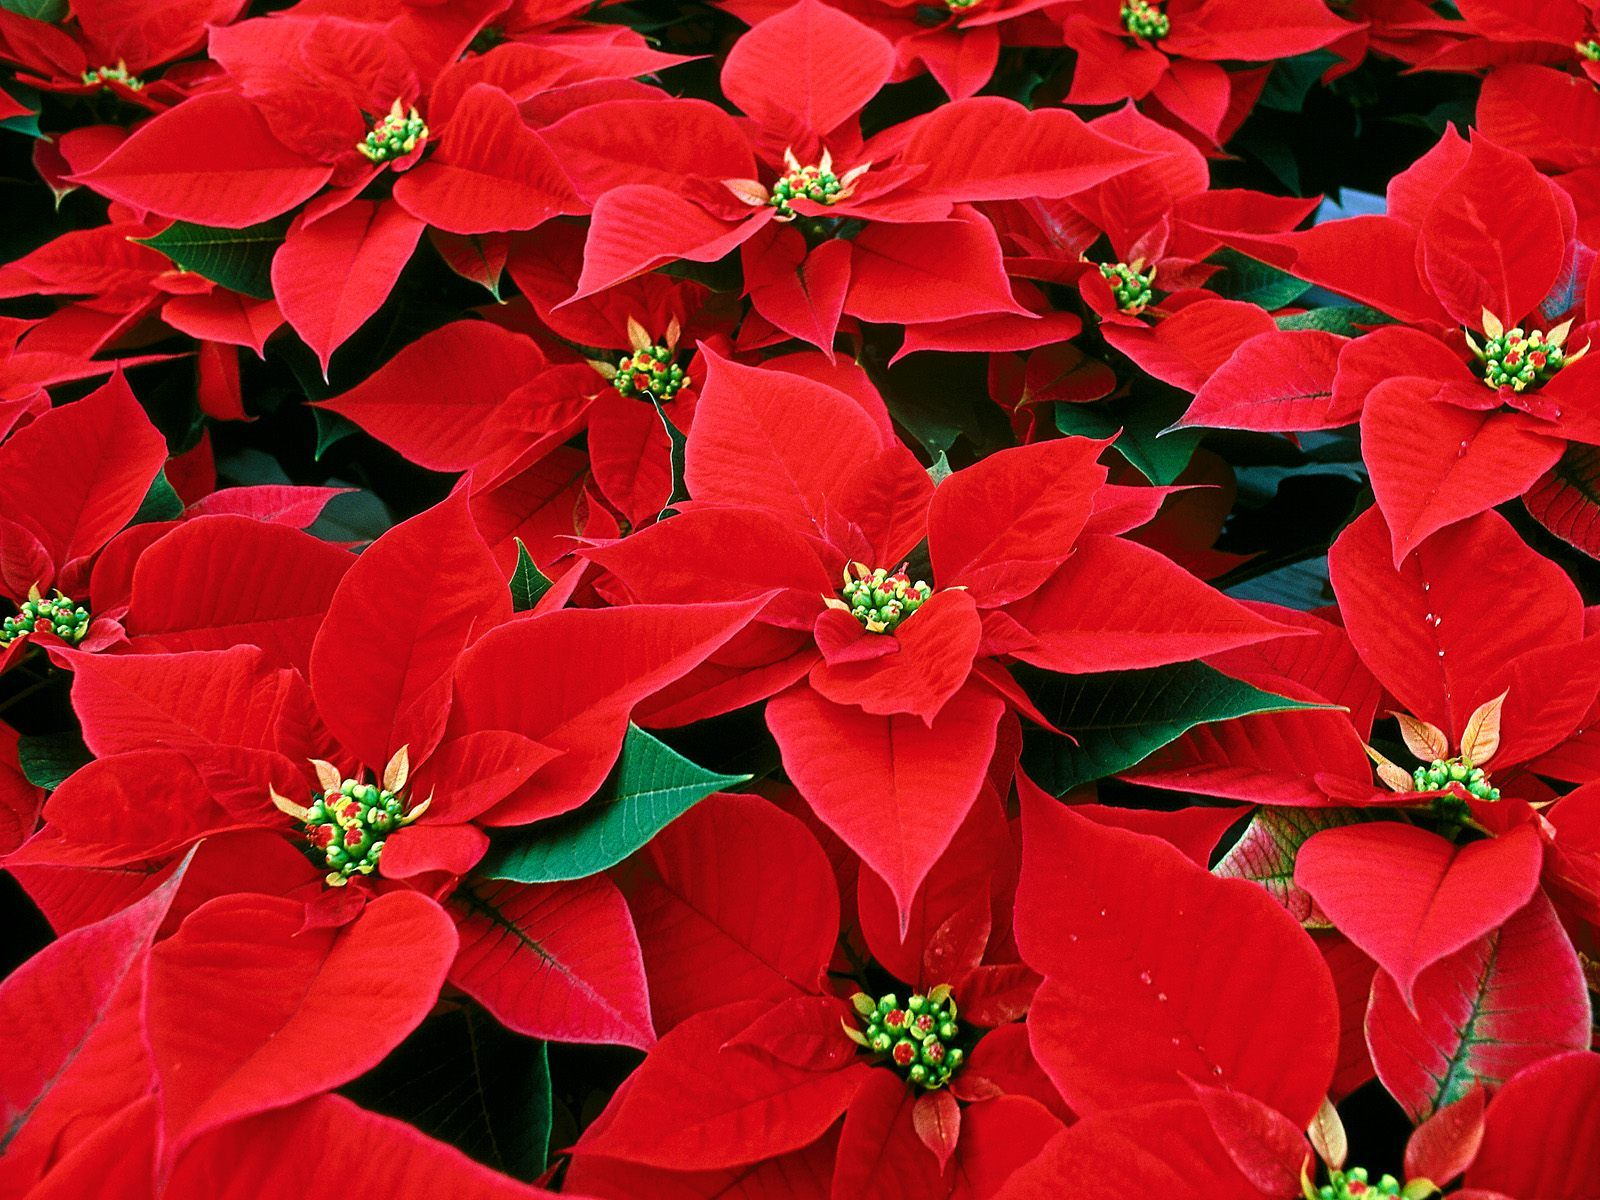 POINSETTIAORDERS - GET YOURS TODAY!